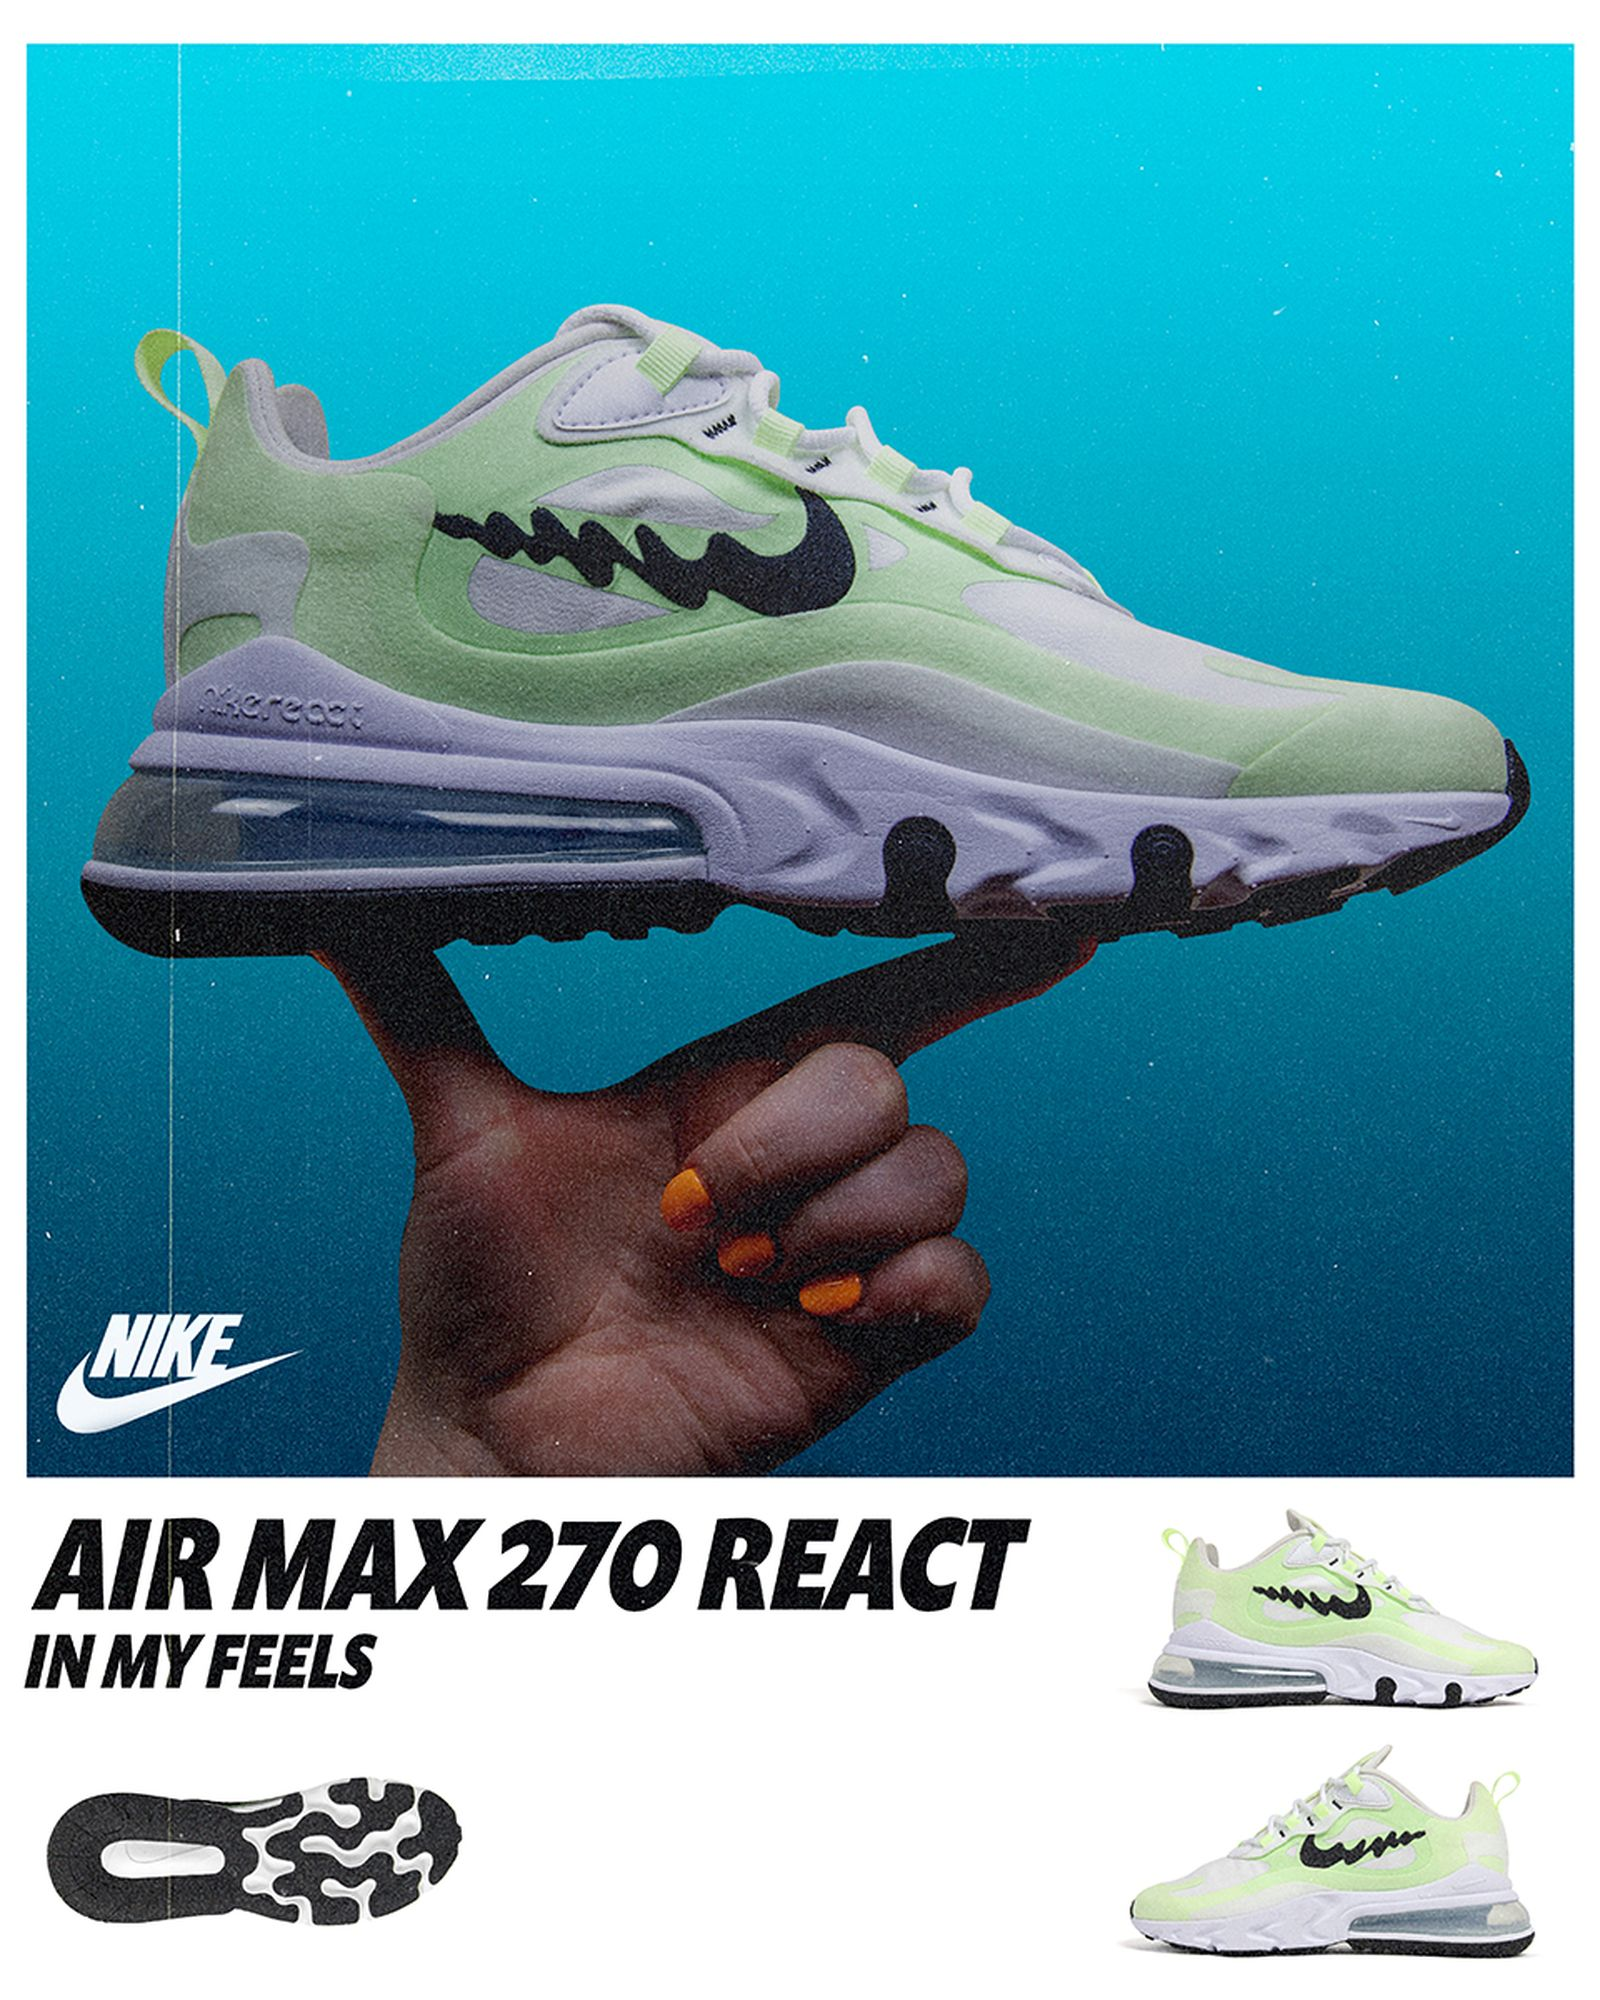 nike air max 270 react in my feels release date price Liz Beecroft